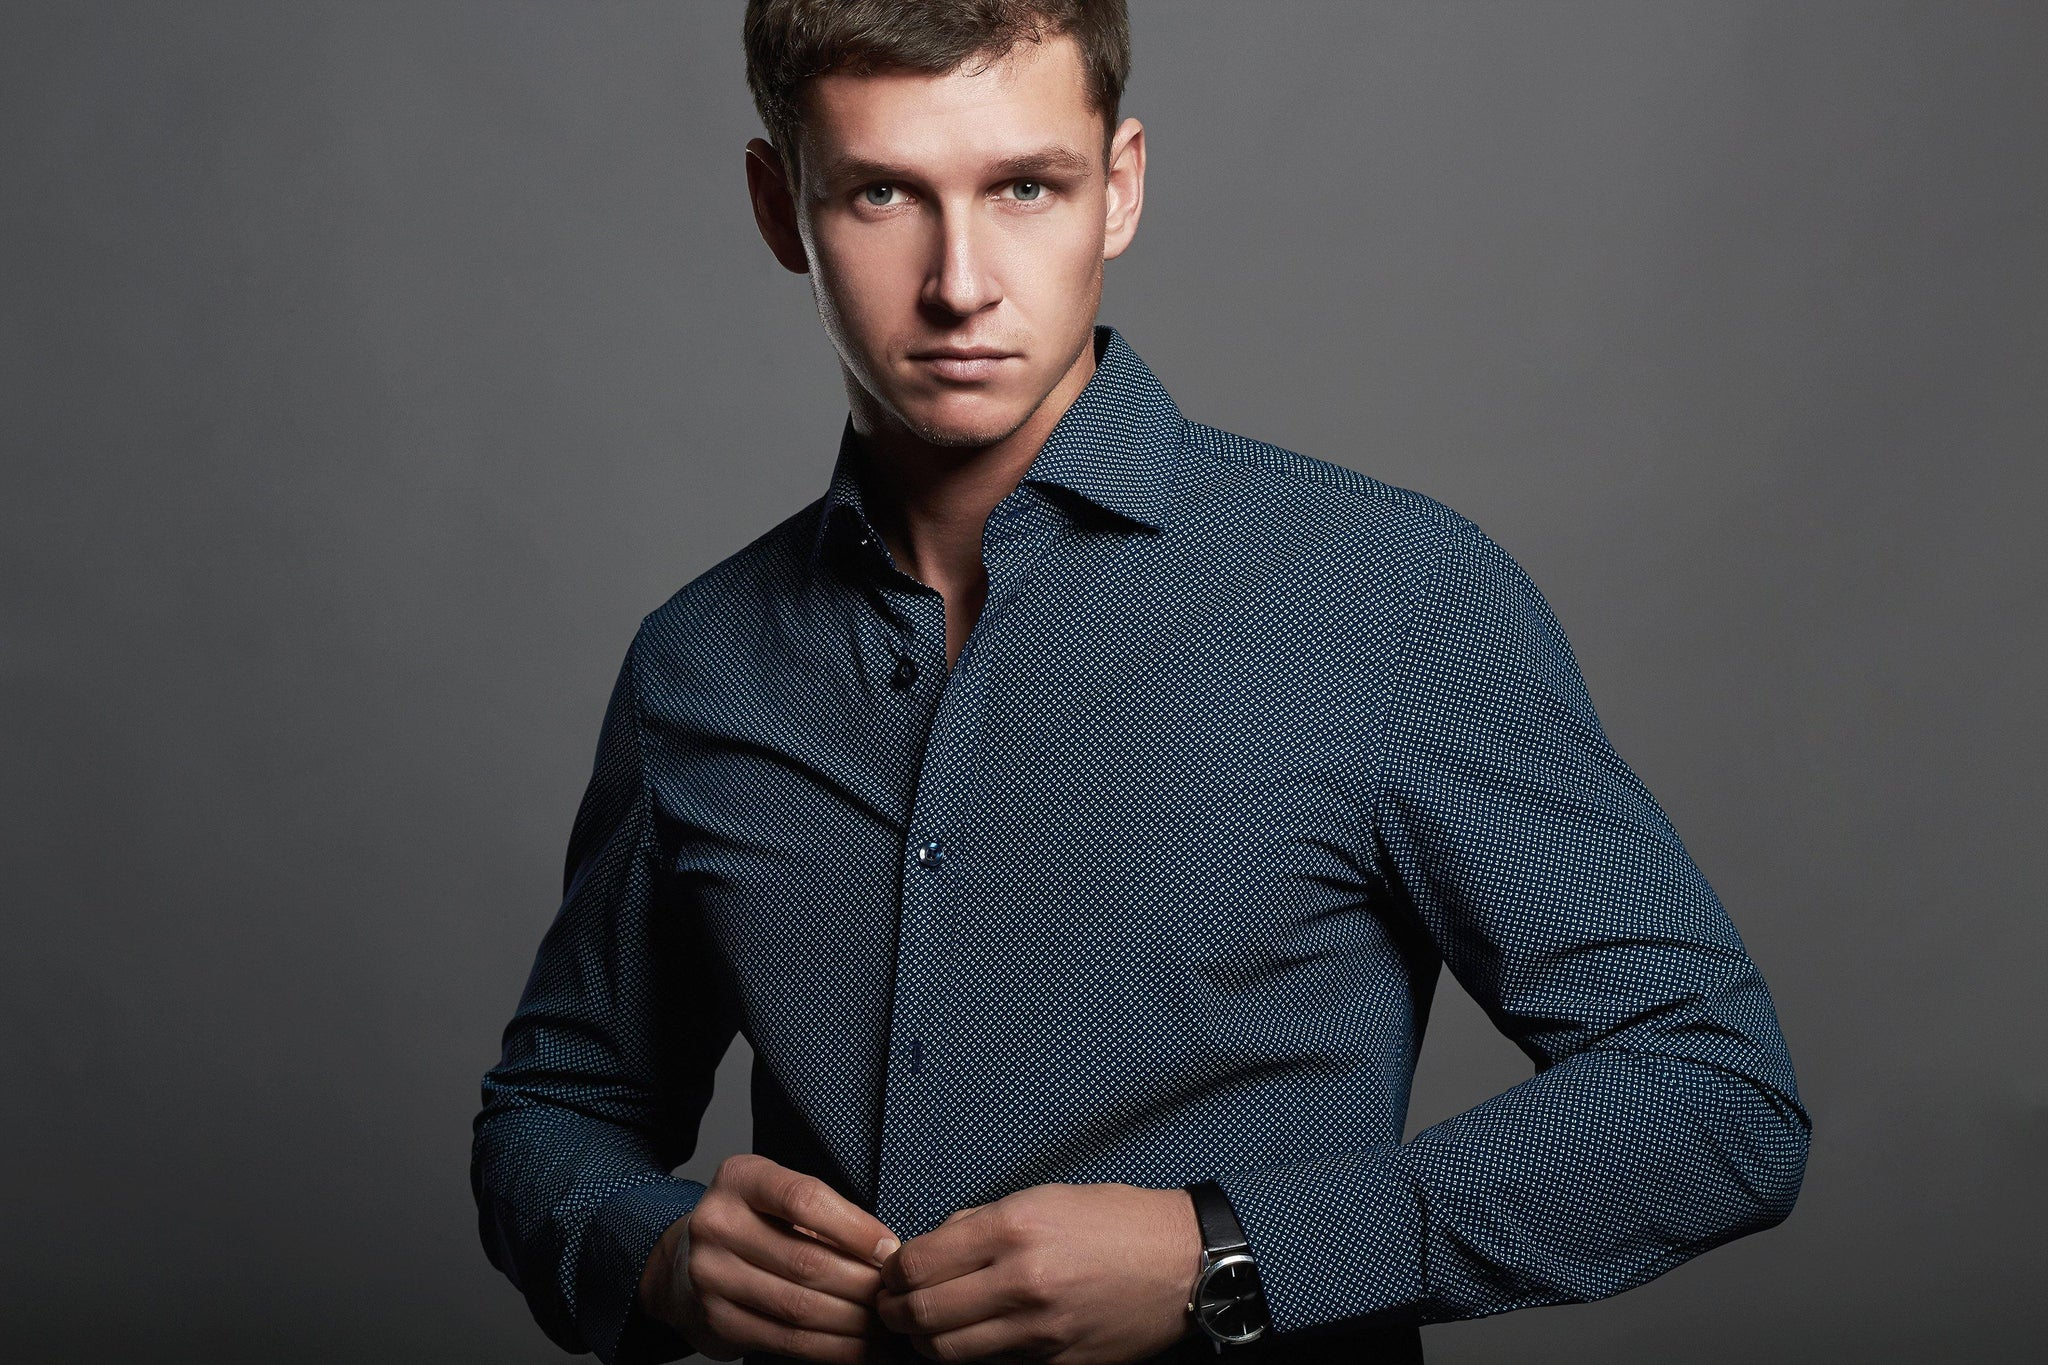 Man wearing shirt alterations from Tad More Tailoring